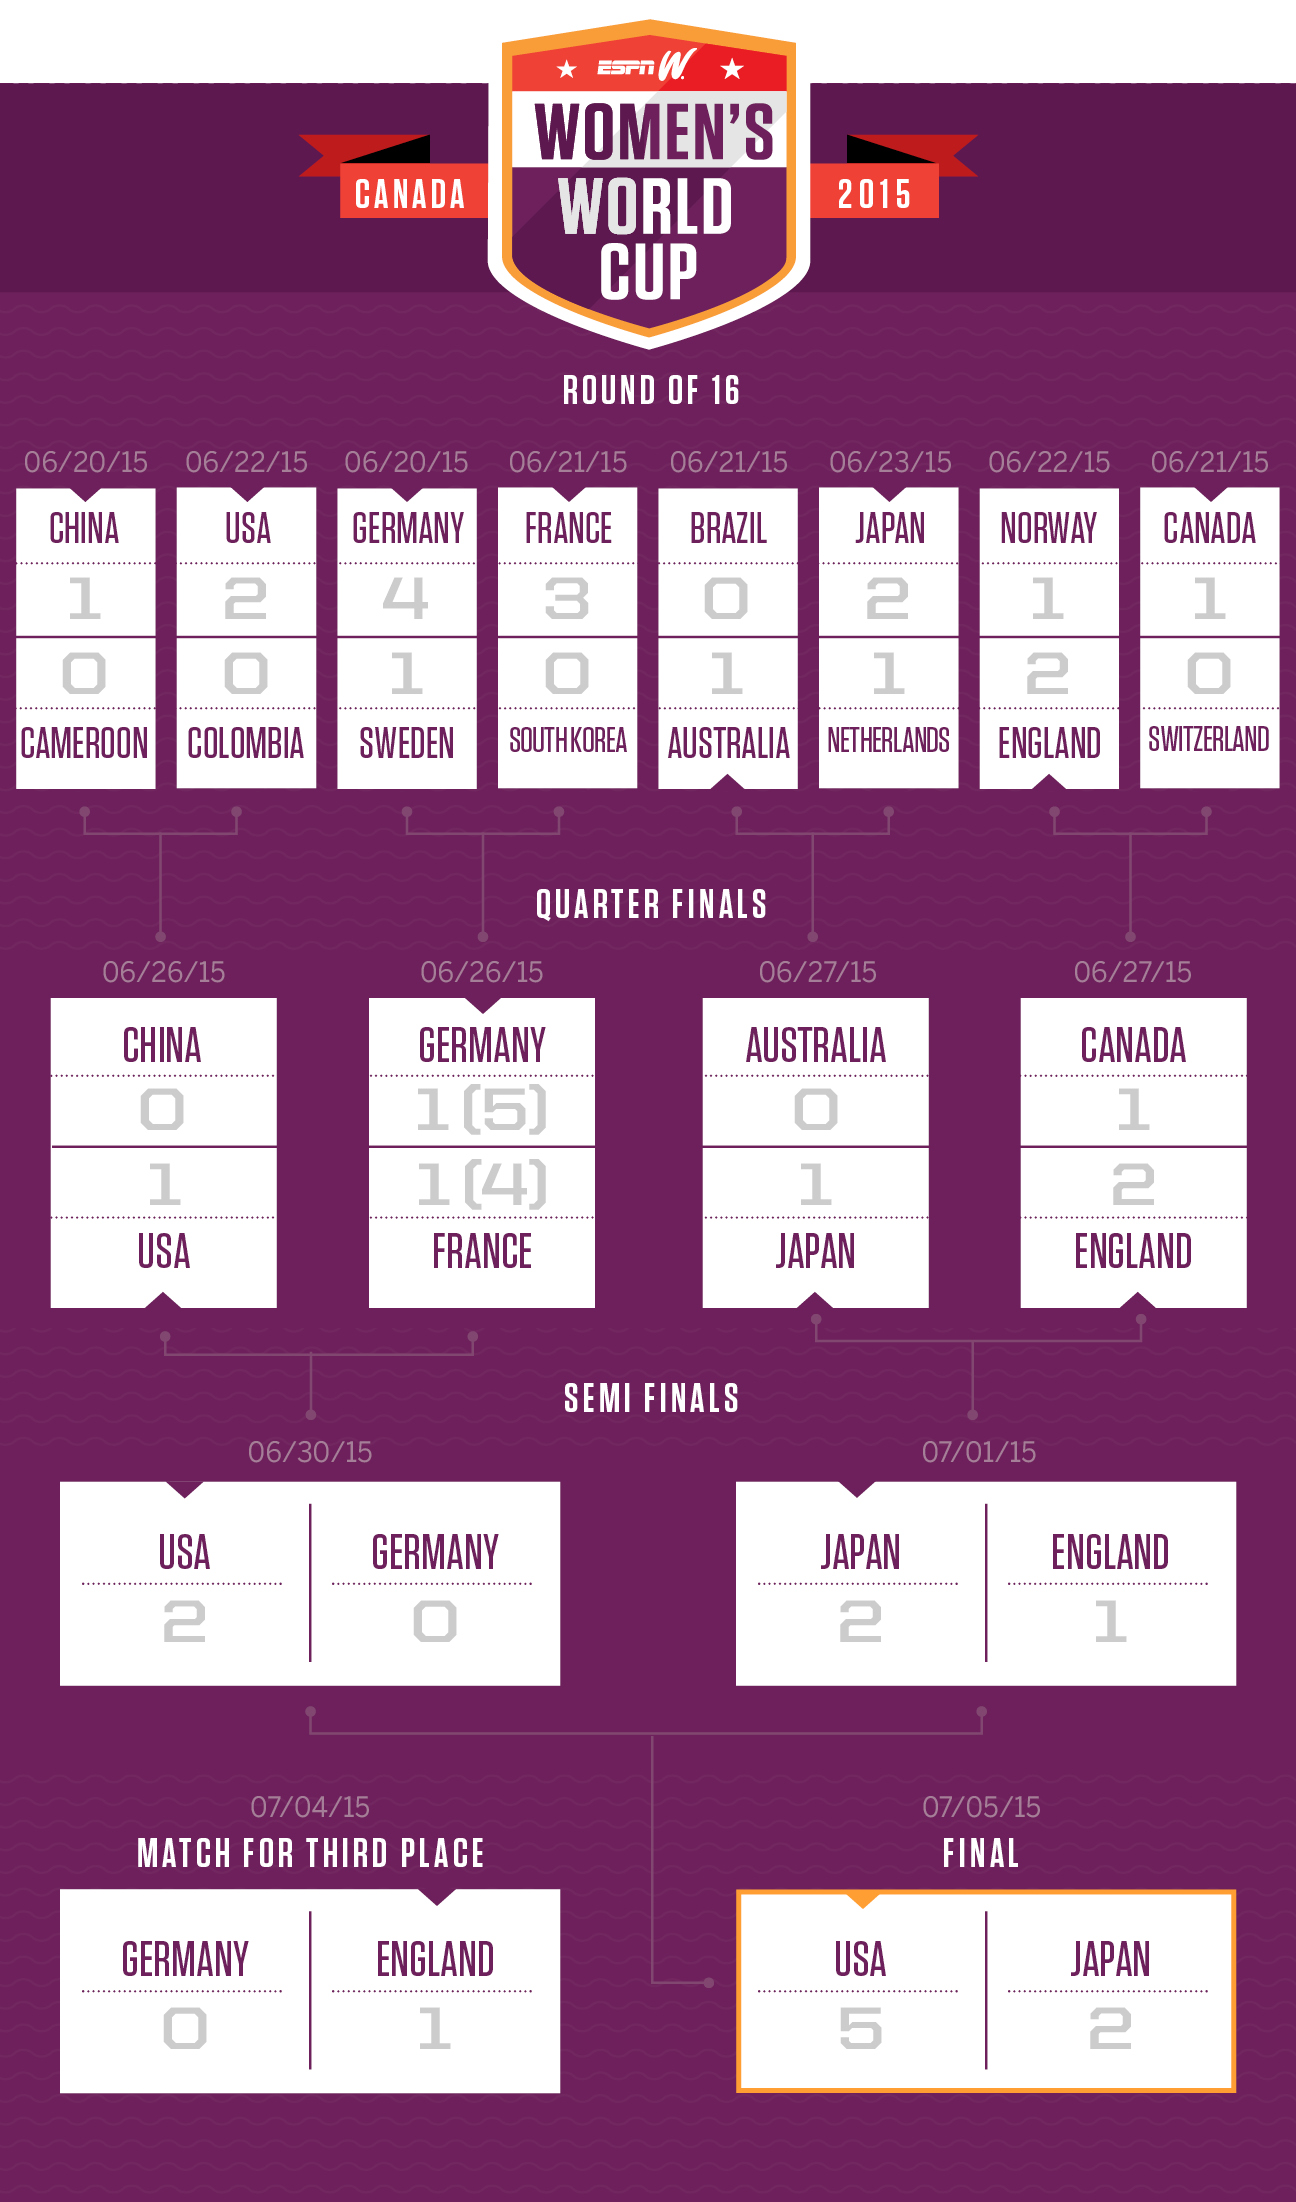 espnW Women's World Cup Bracket 7-5